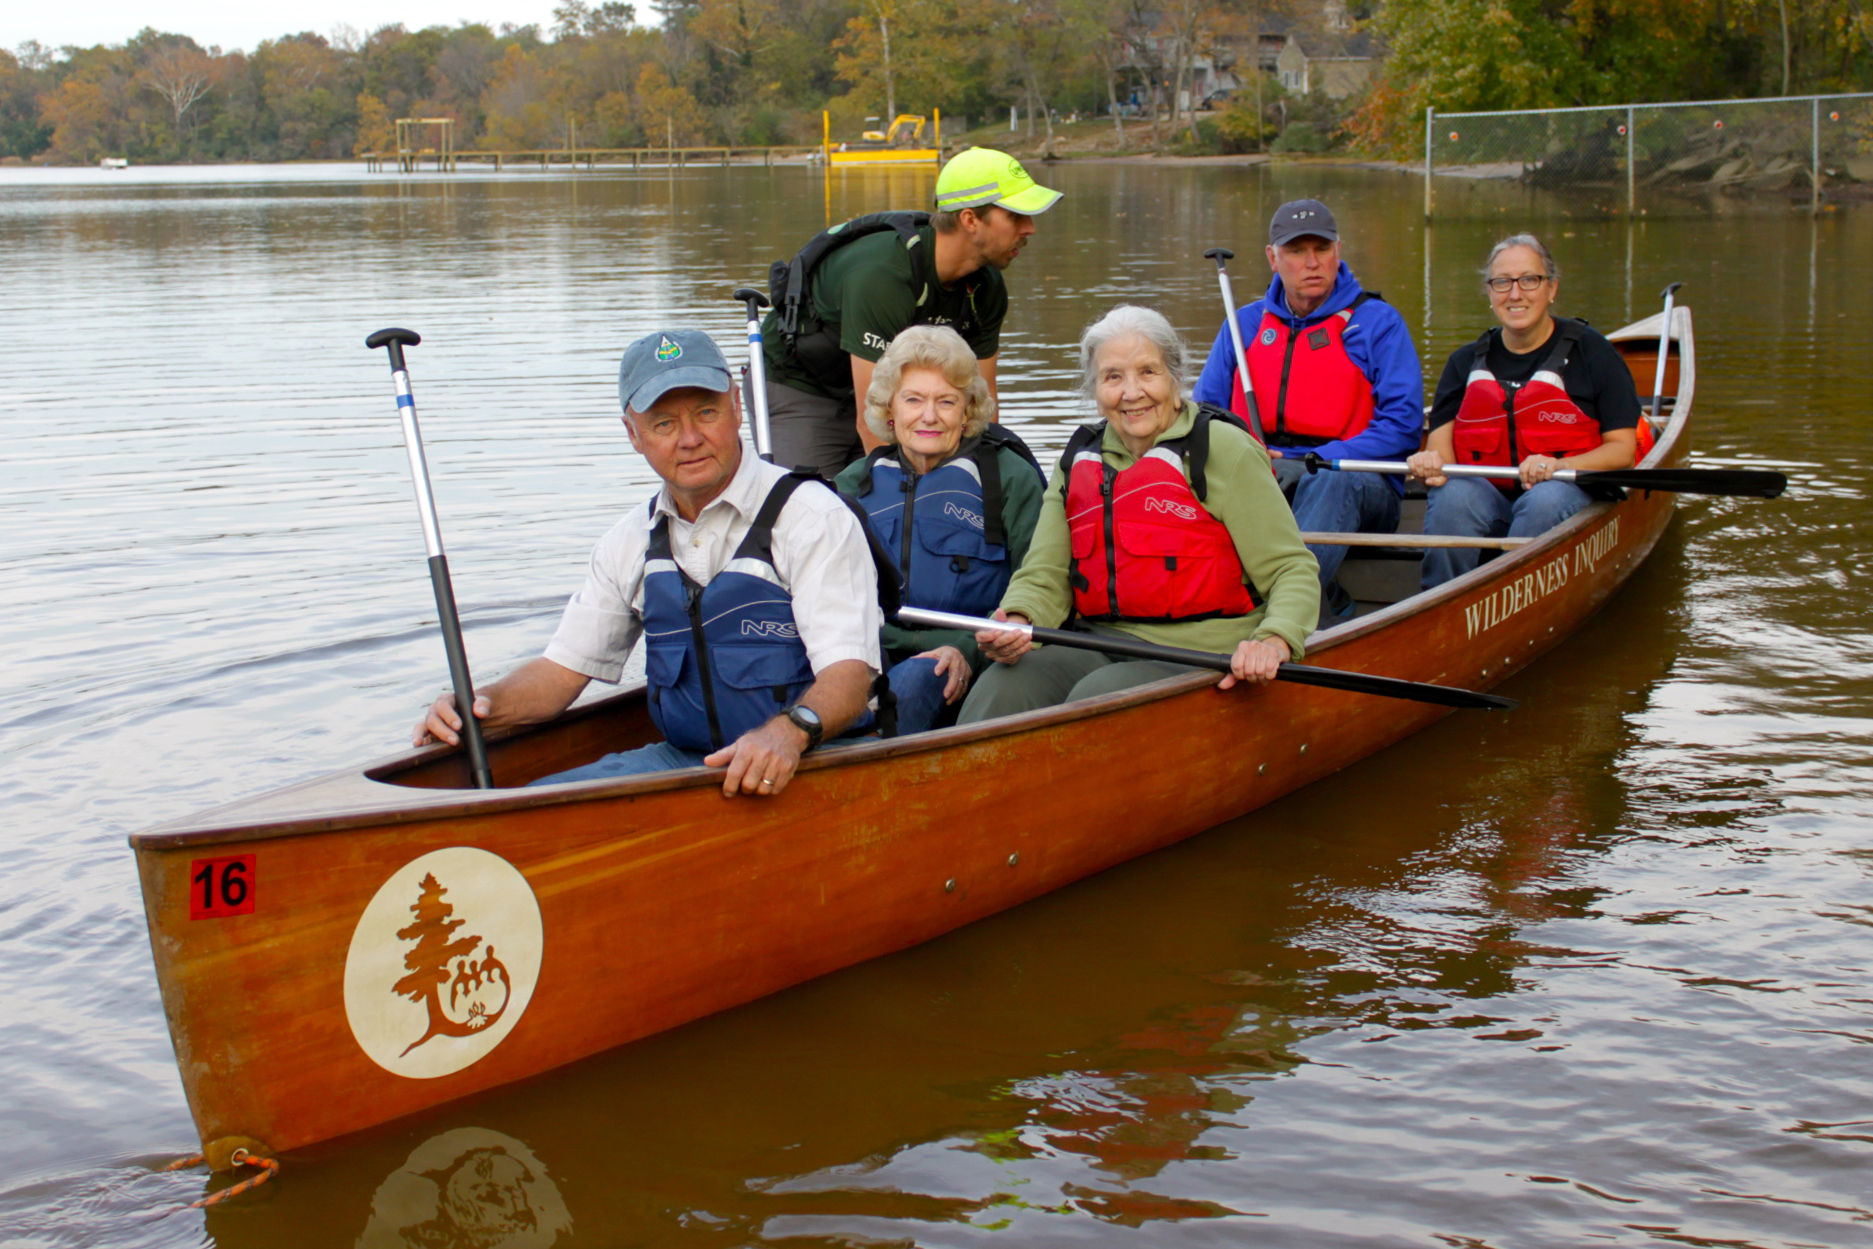 a group of 5 adults sit in the canoe prepared to paddle